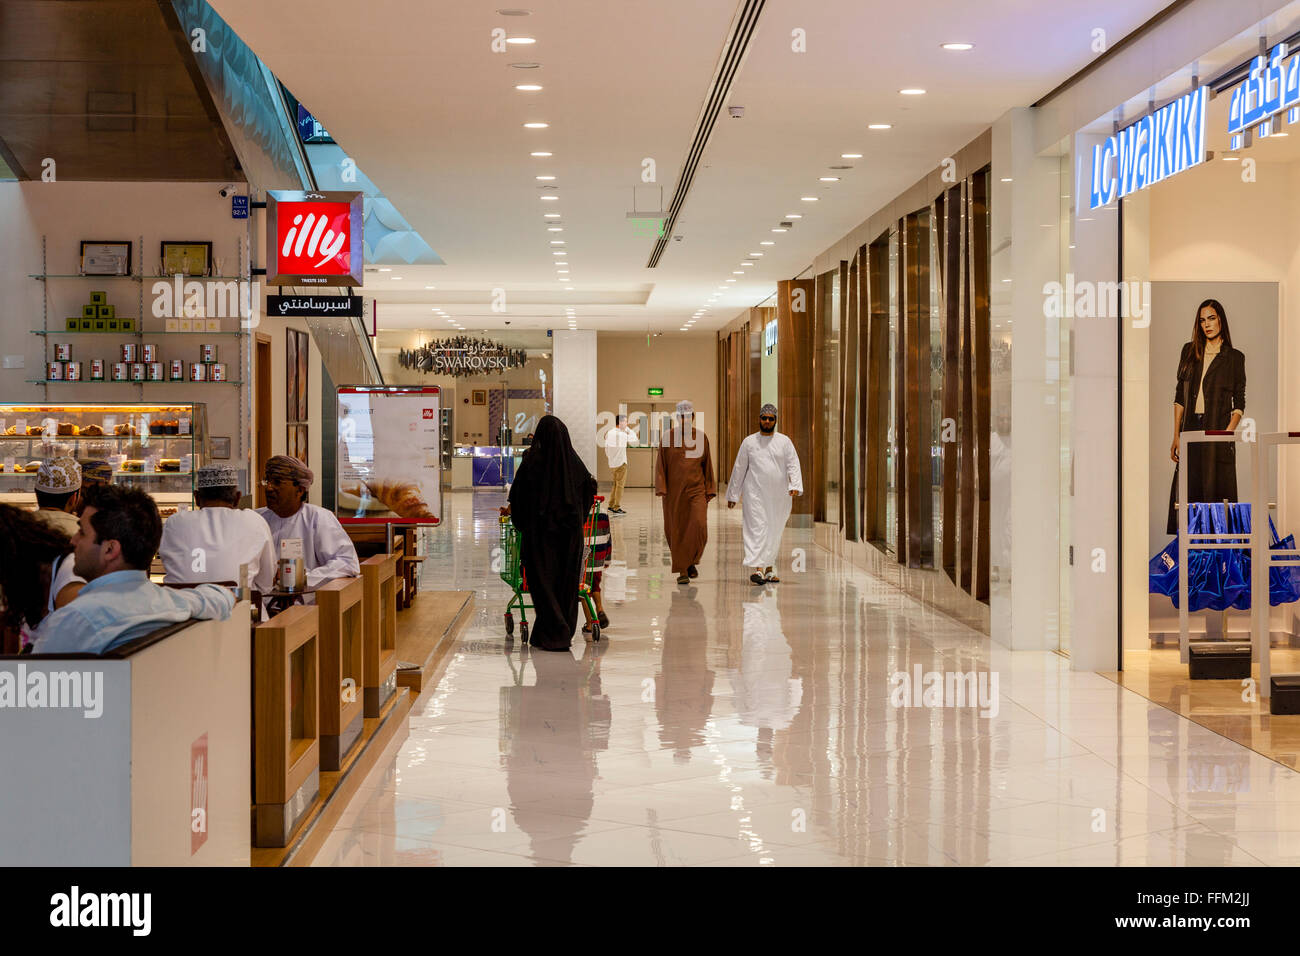 Omani People Shopping In The Oman Avenues Shopping Mall, Muscat, Sultanate Of Oman - Stock Image